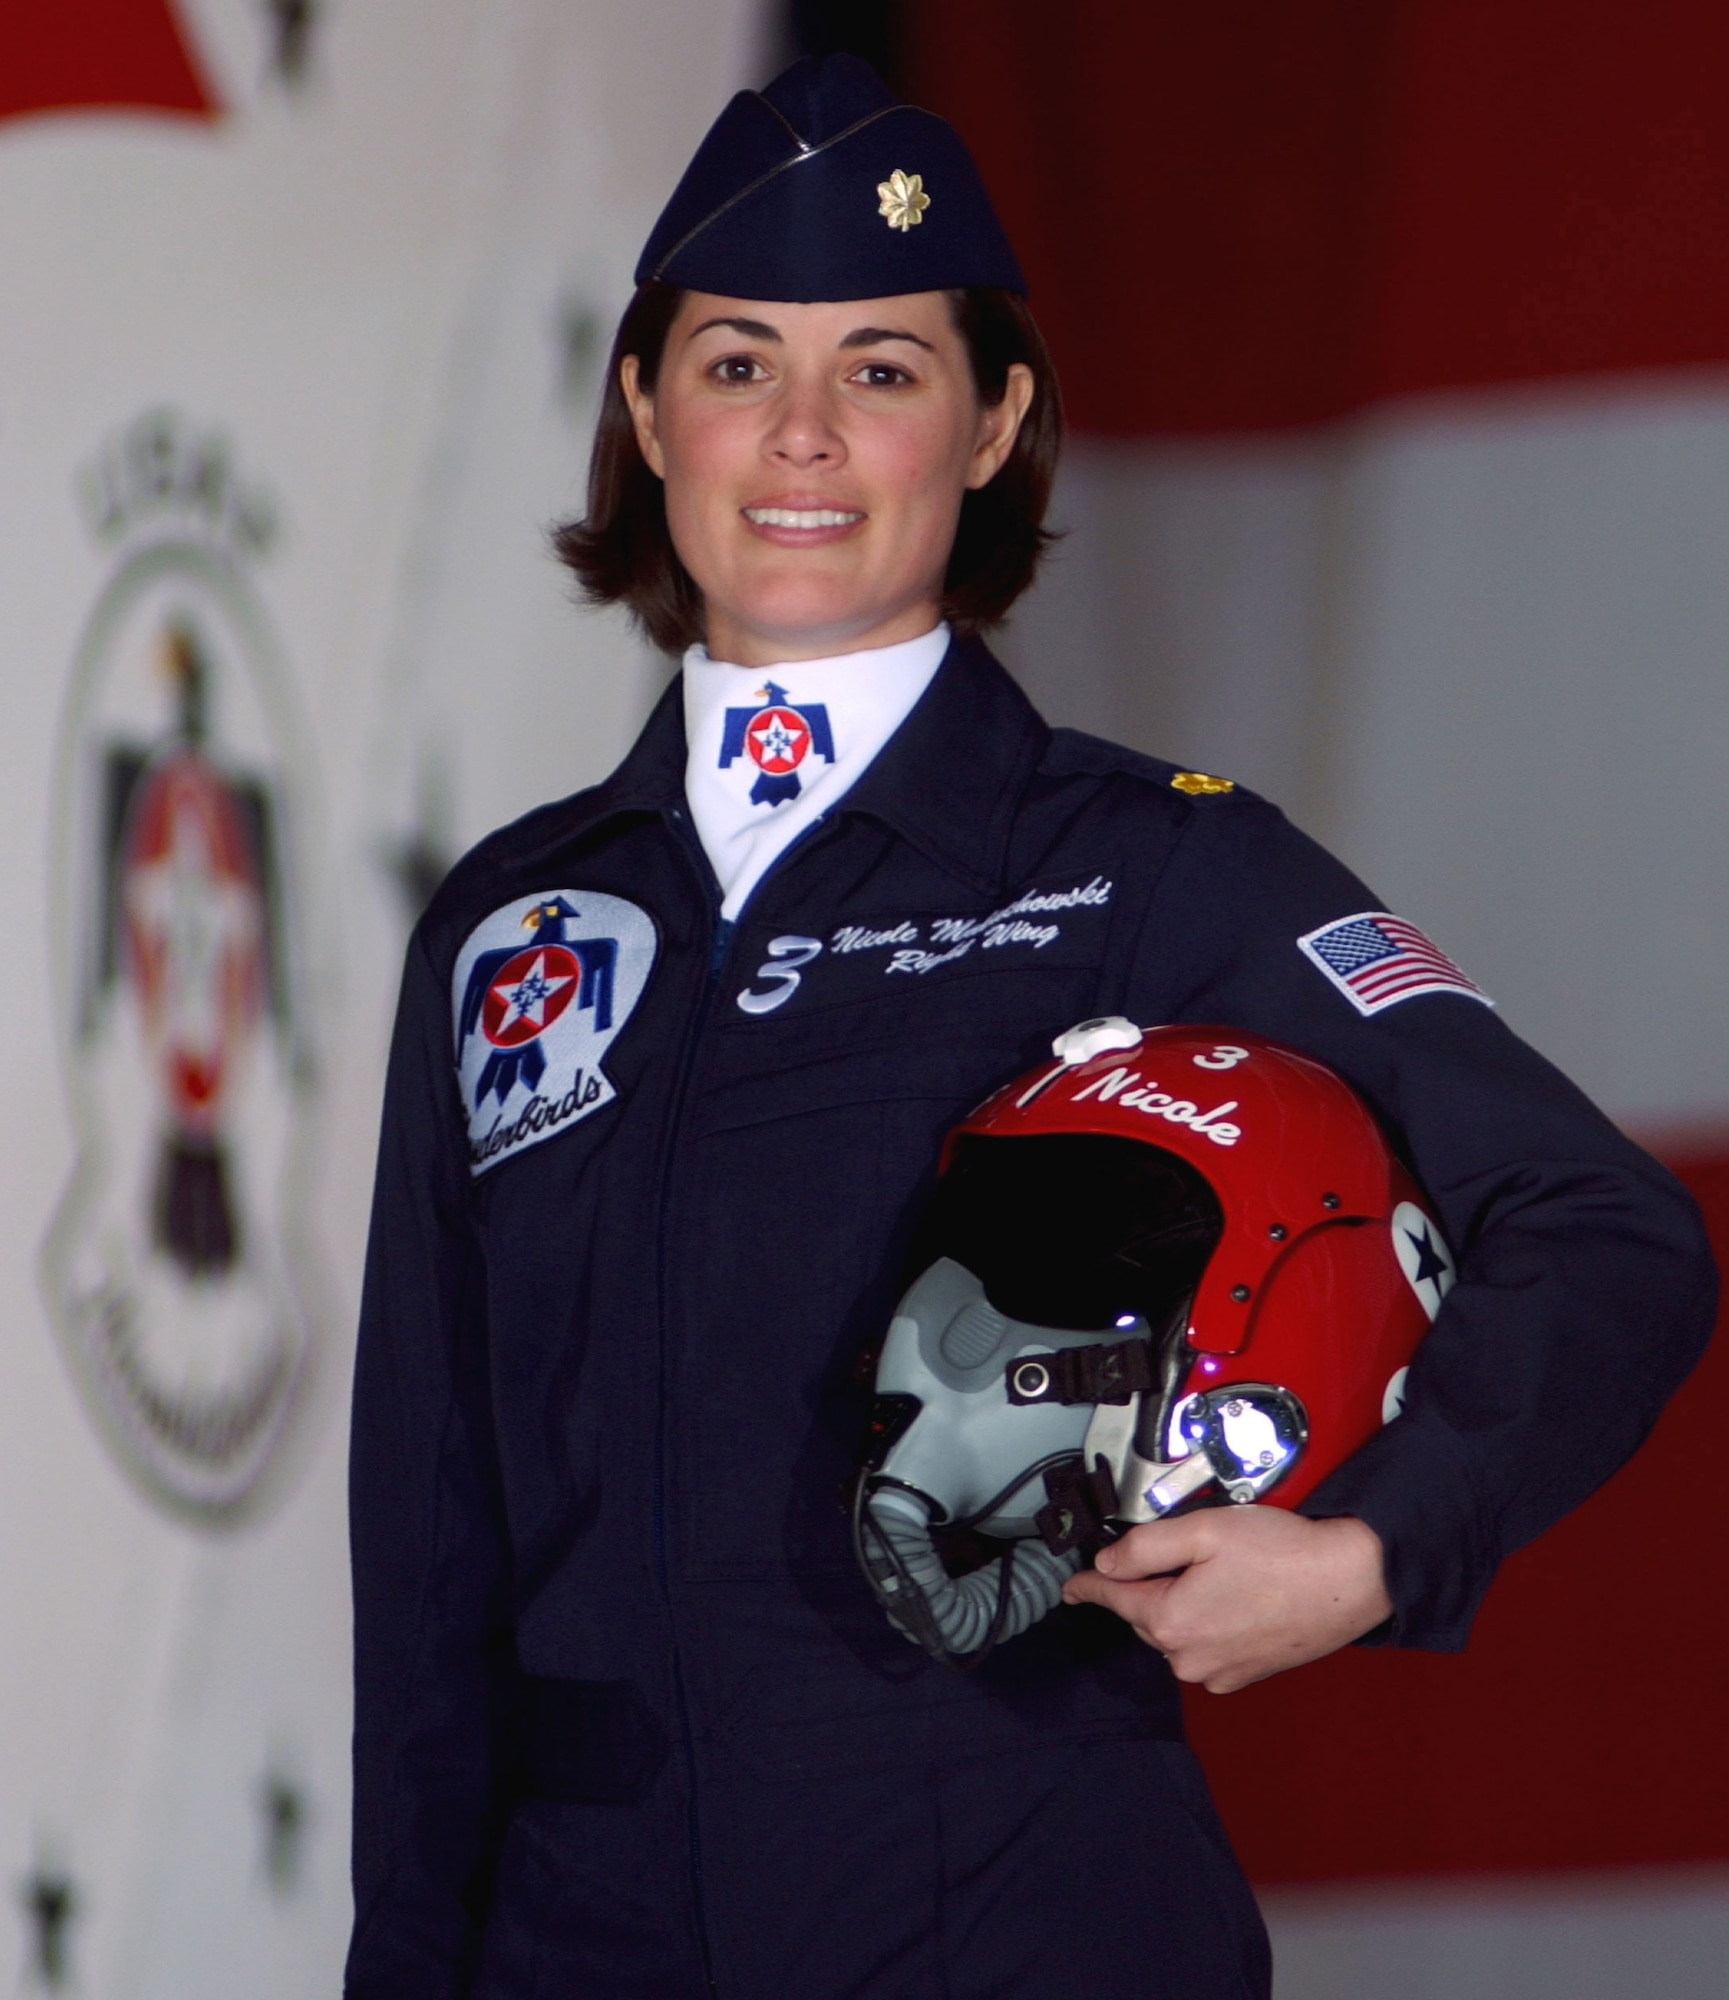 Maj. Nicole Malachowski is the first woman pilot on the U.S. Air Force Thunderbirds. The Thunderbirds are in Washington for the dedication of the Air Force Memorial, scheduled for Oct. 14.   (U.S. Air Force photo)